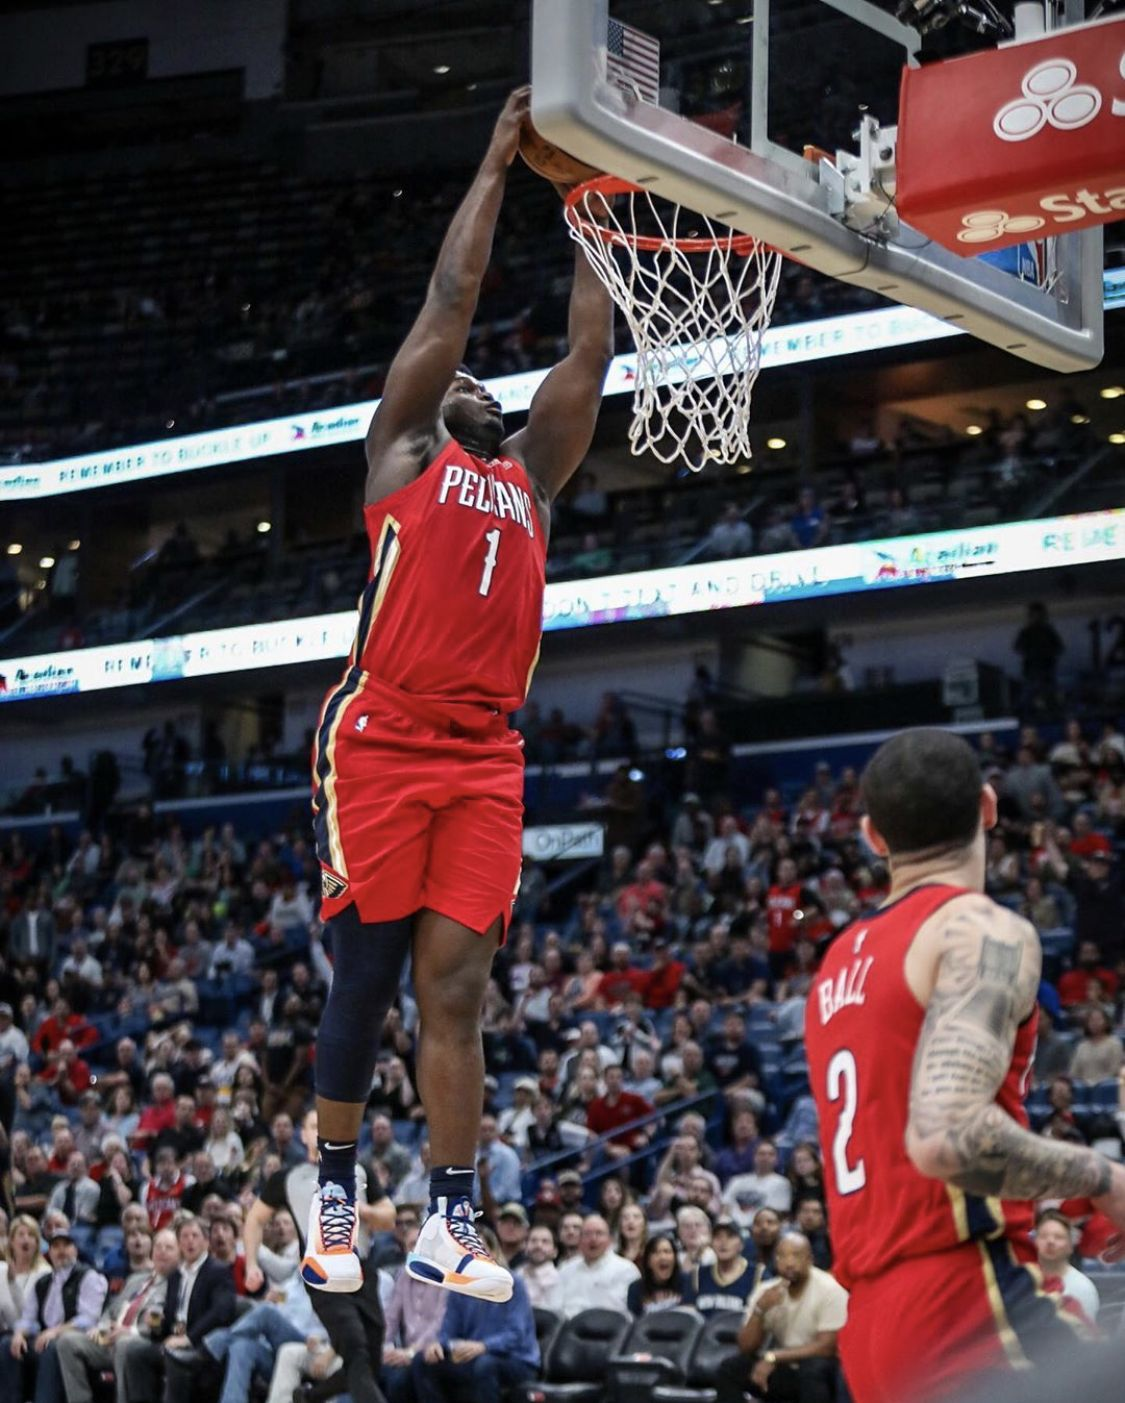 Pin by Daniel Son on Zion in 2020 New orleans pelicans